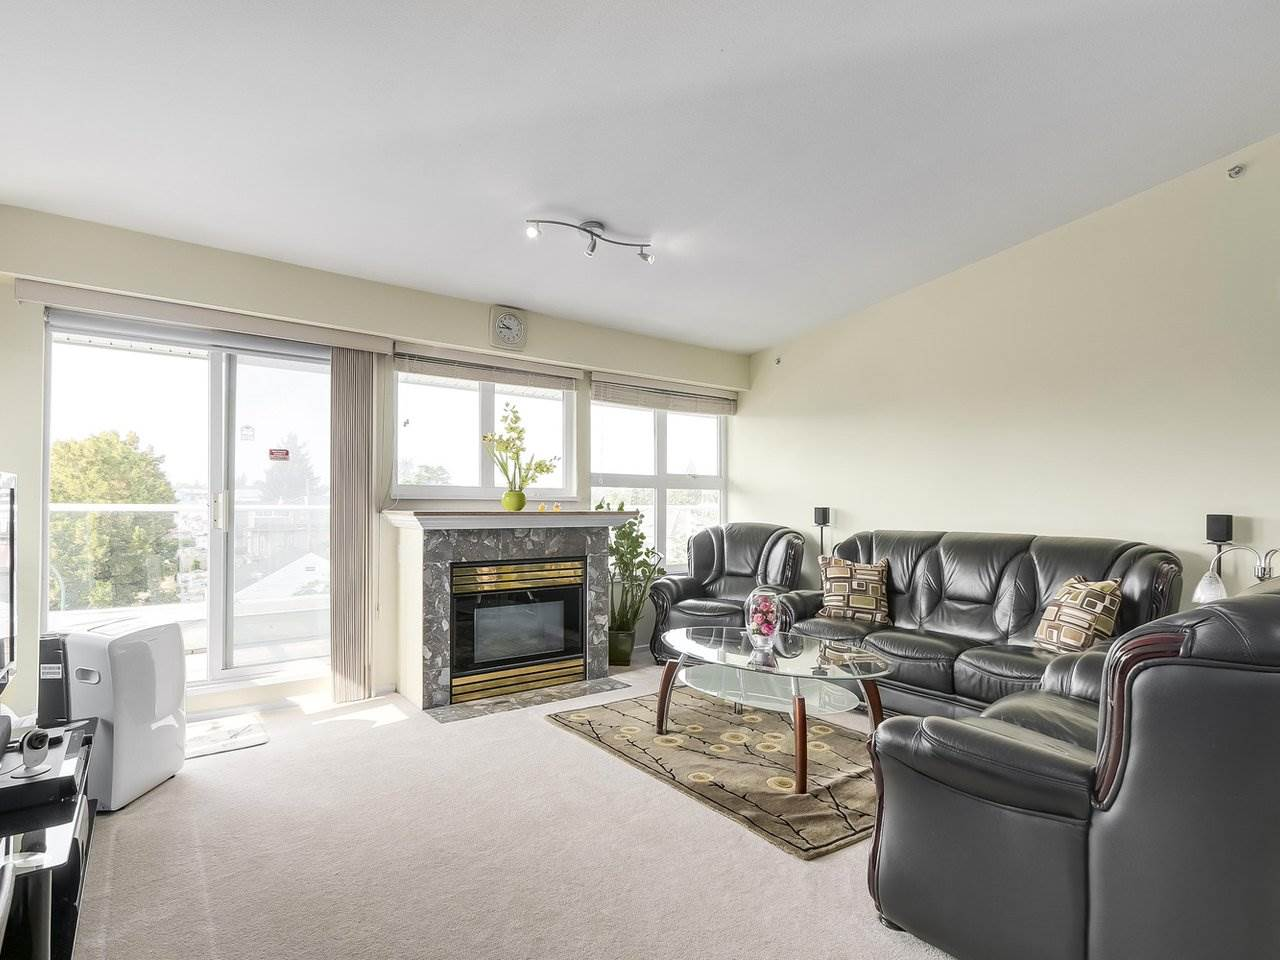 Condo Apartment at 405 2965 HORLEY STREET, Unit 405, Vancouver East, British Columbia. Image 2